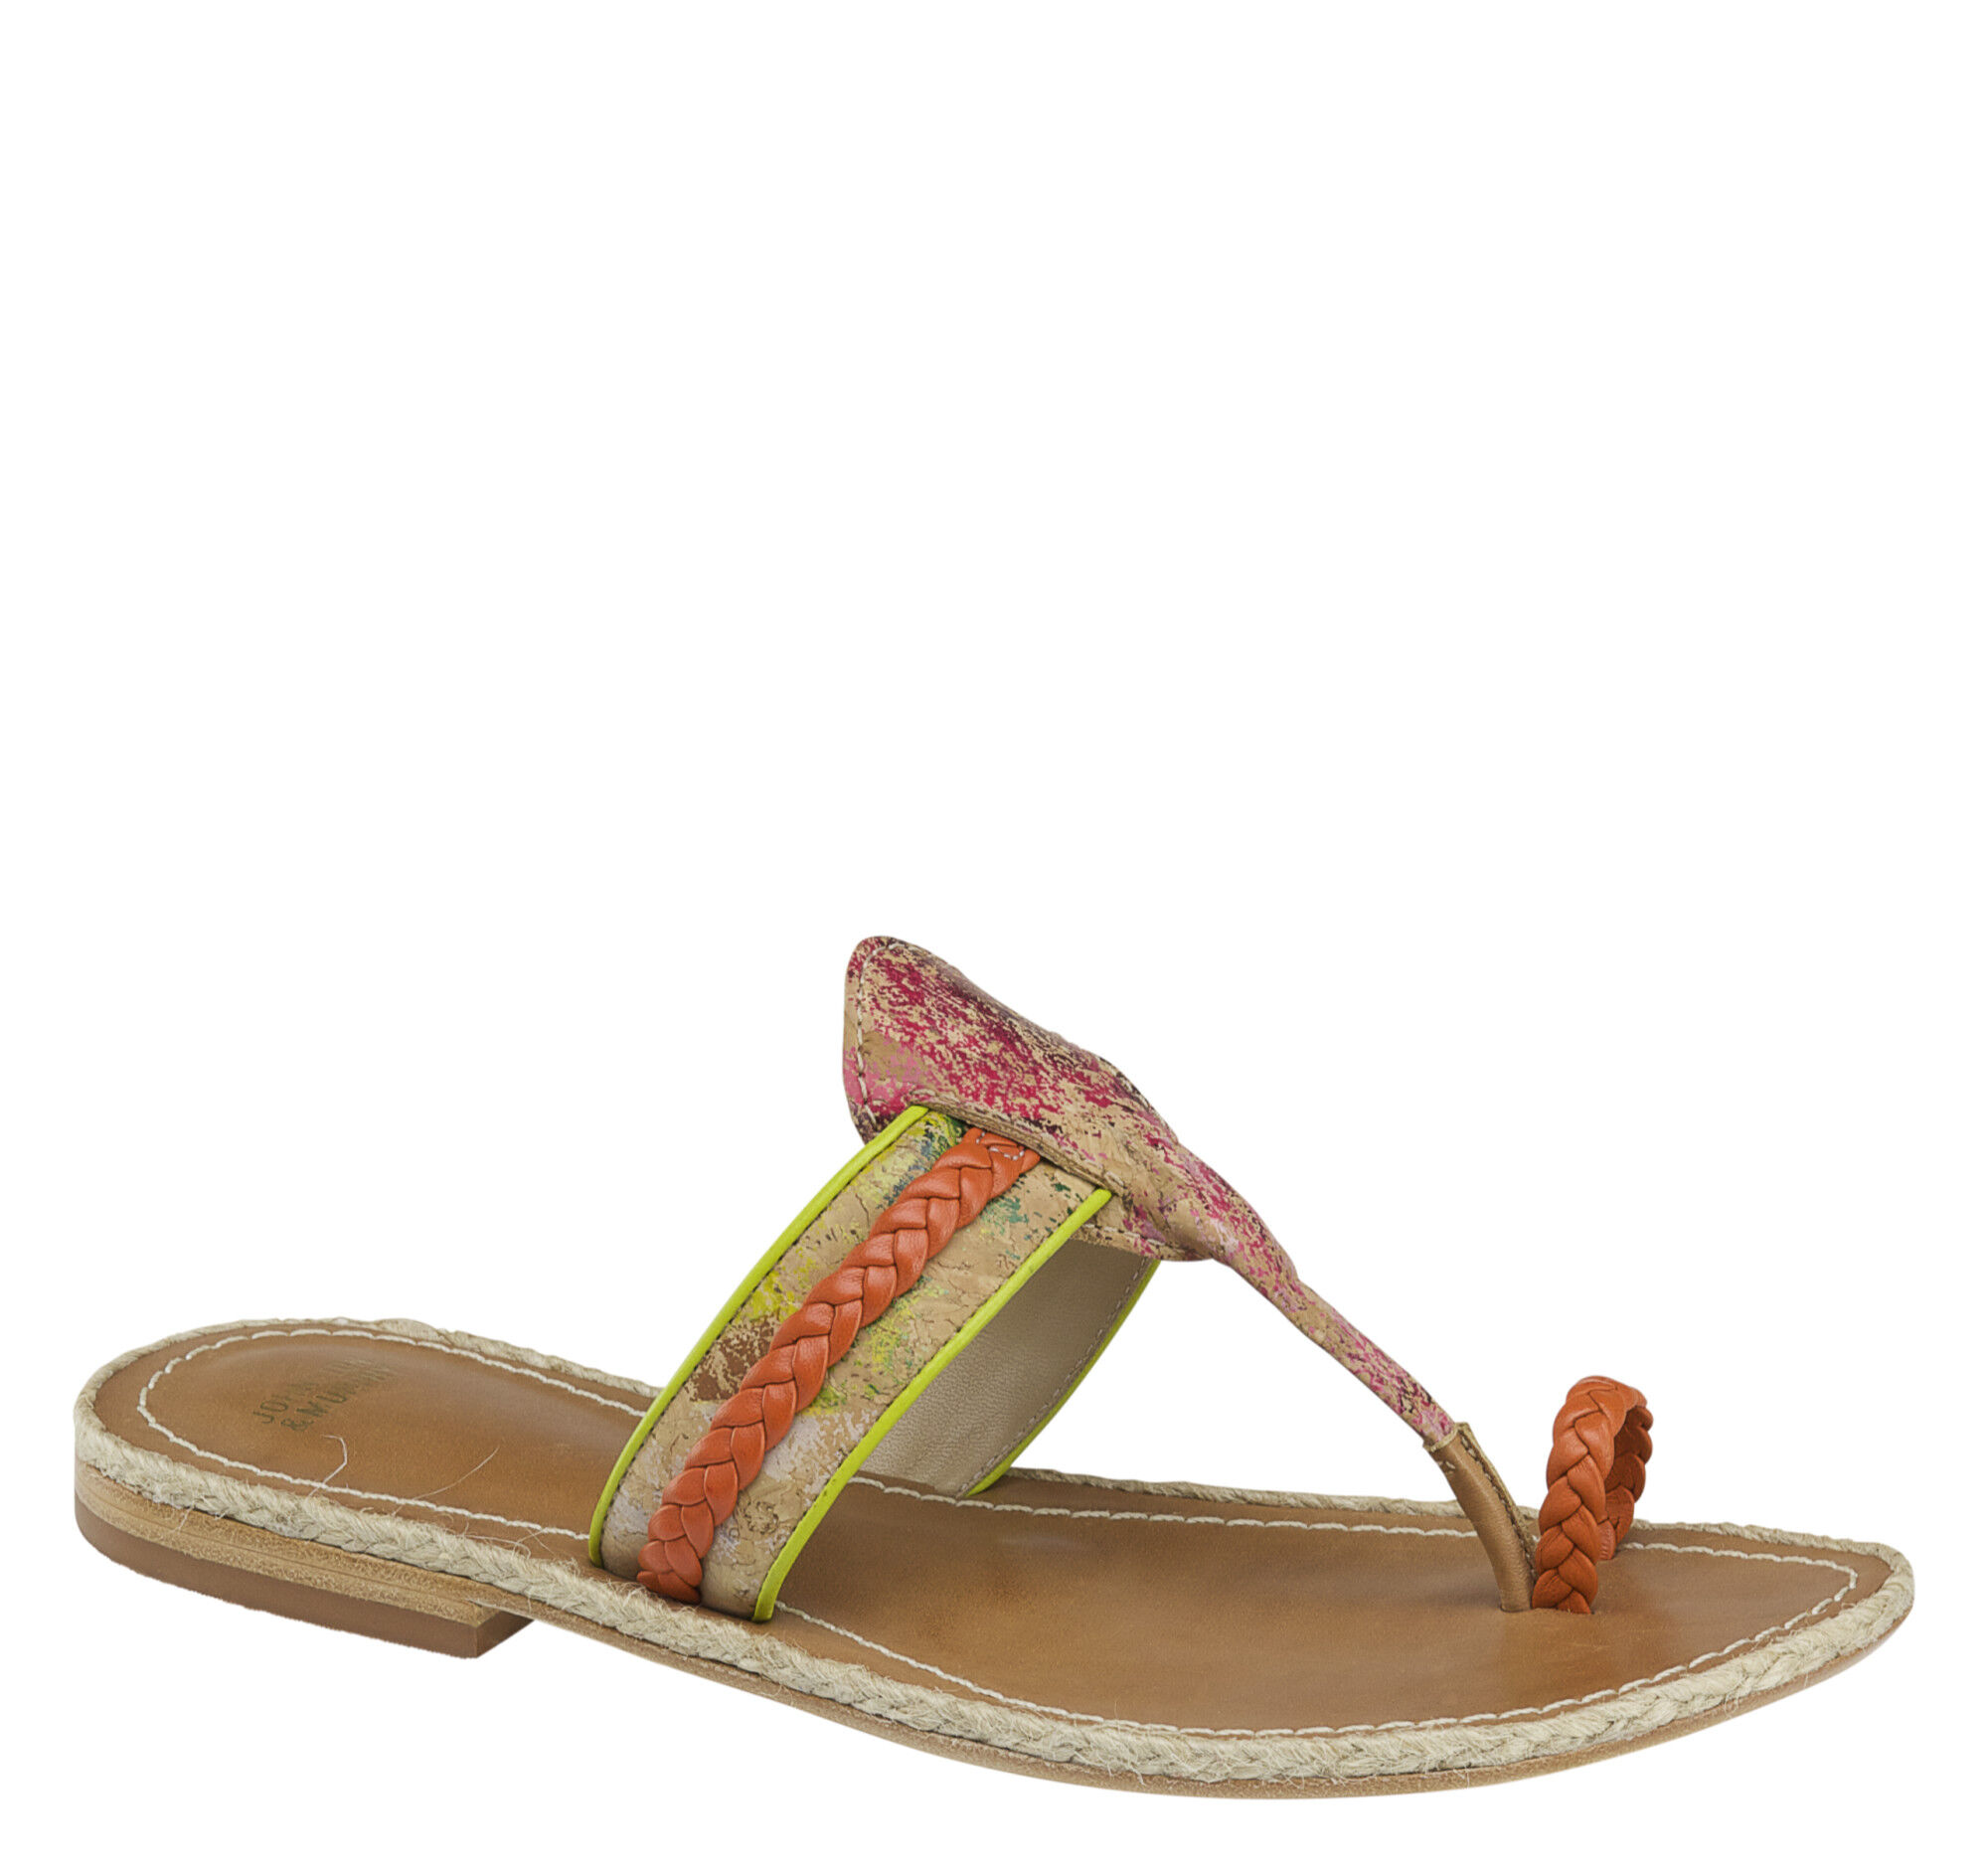 $98 off these Women's Toe-Ring Thongs